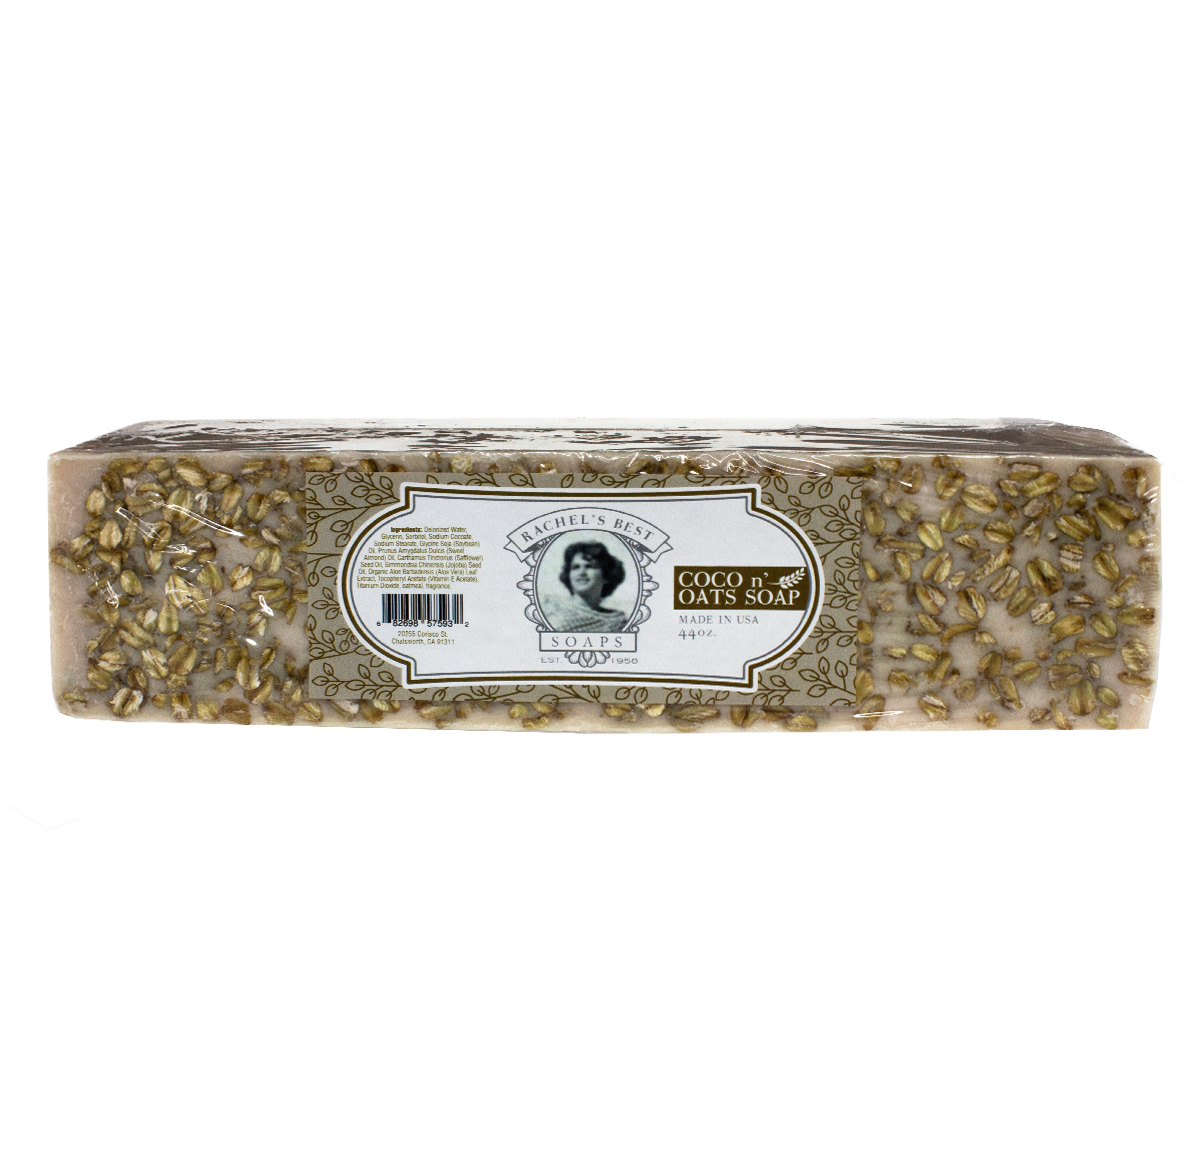 Coco n' Oats Soap different view